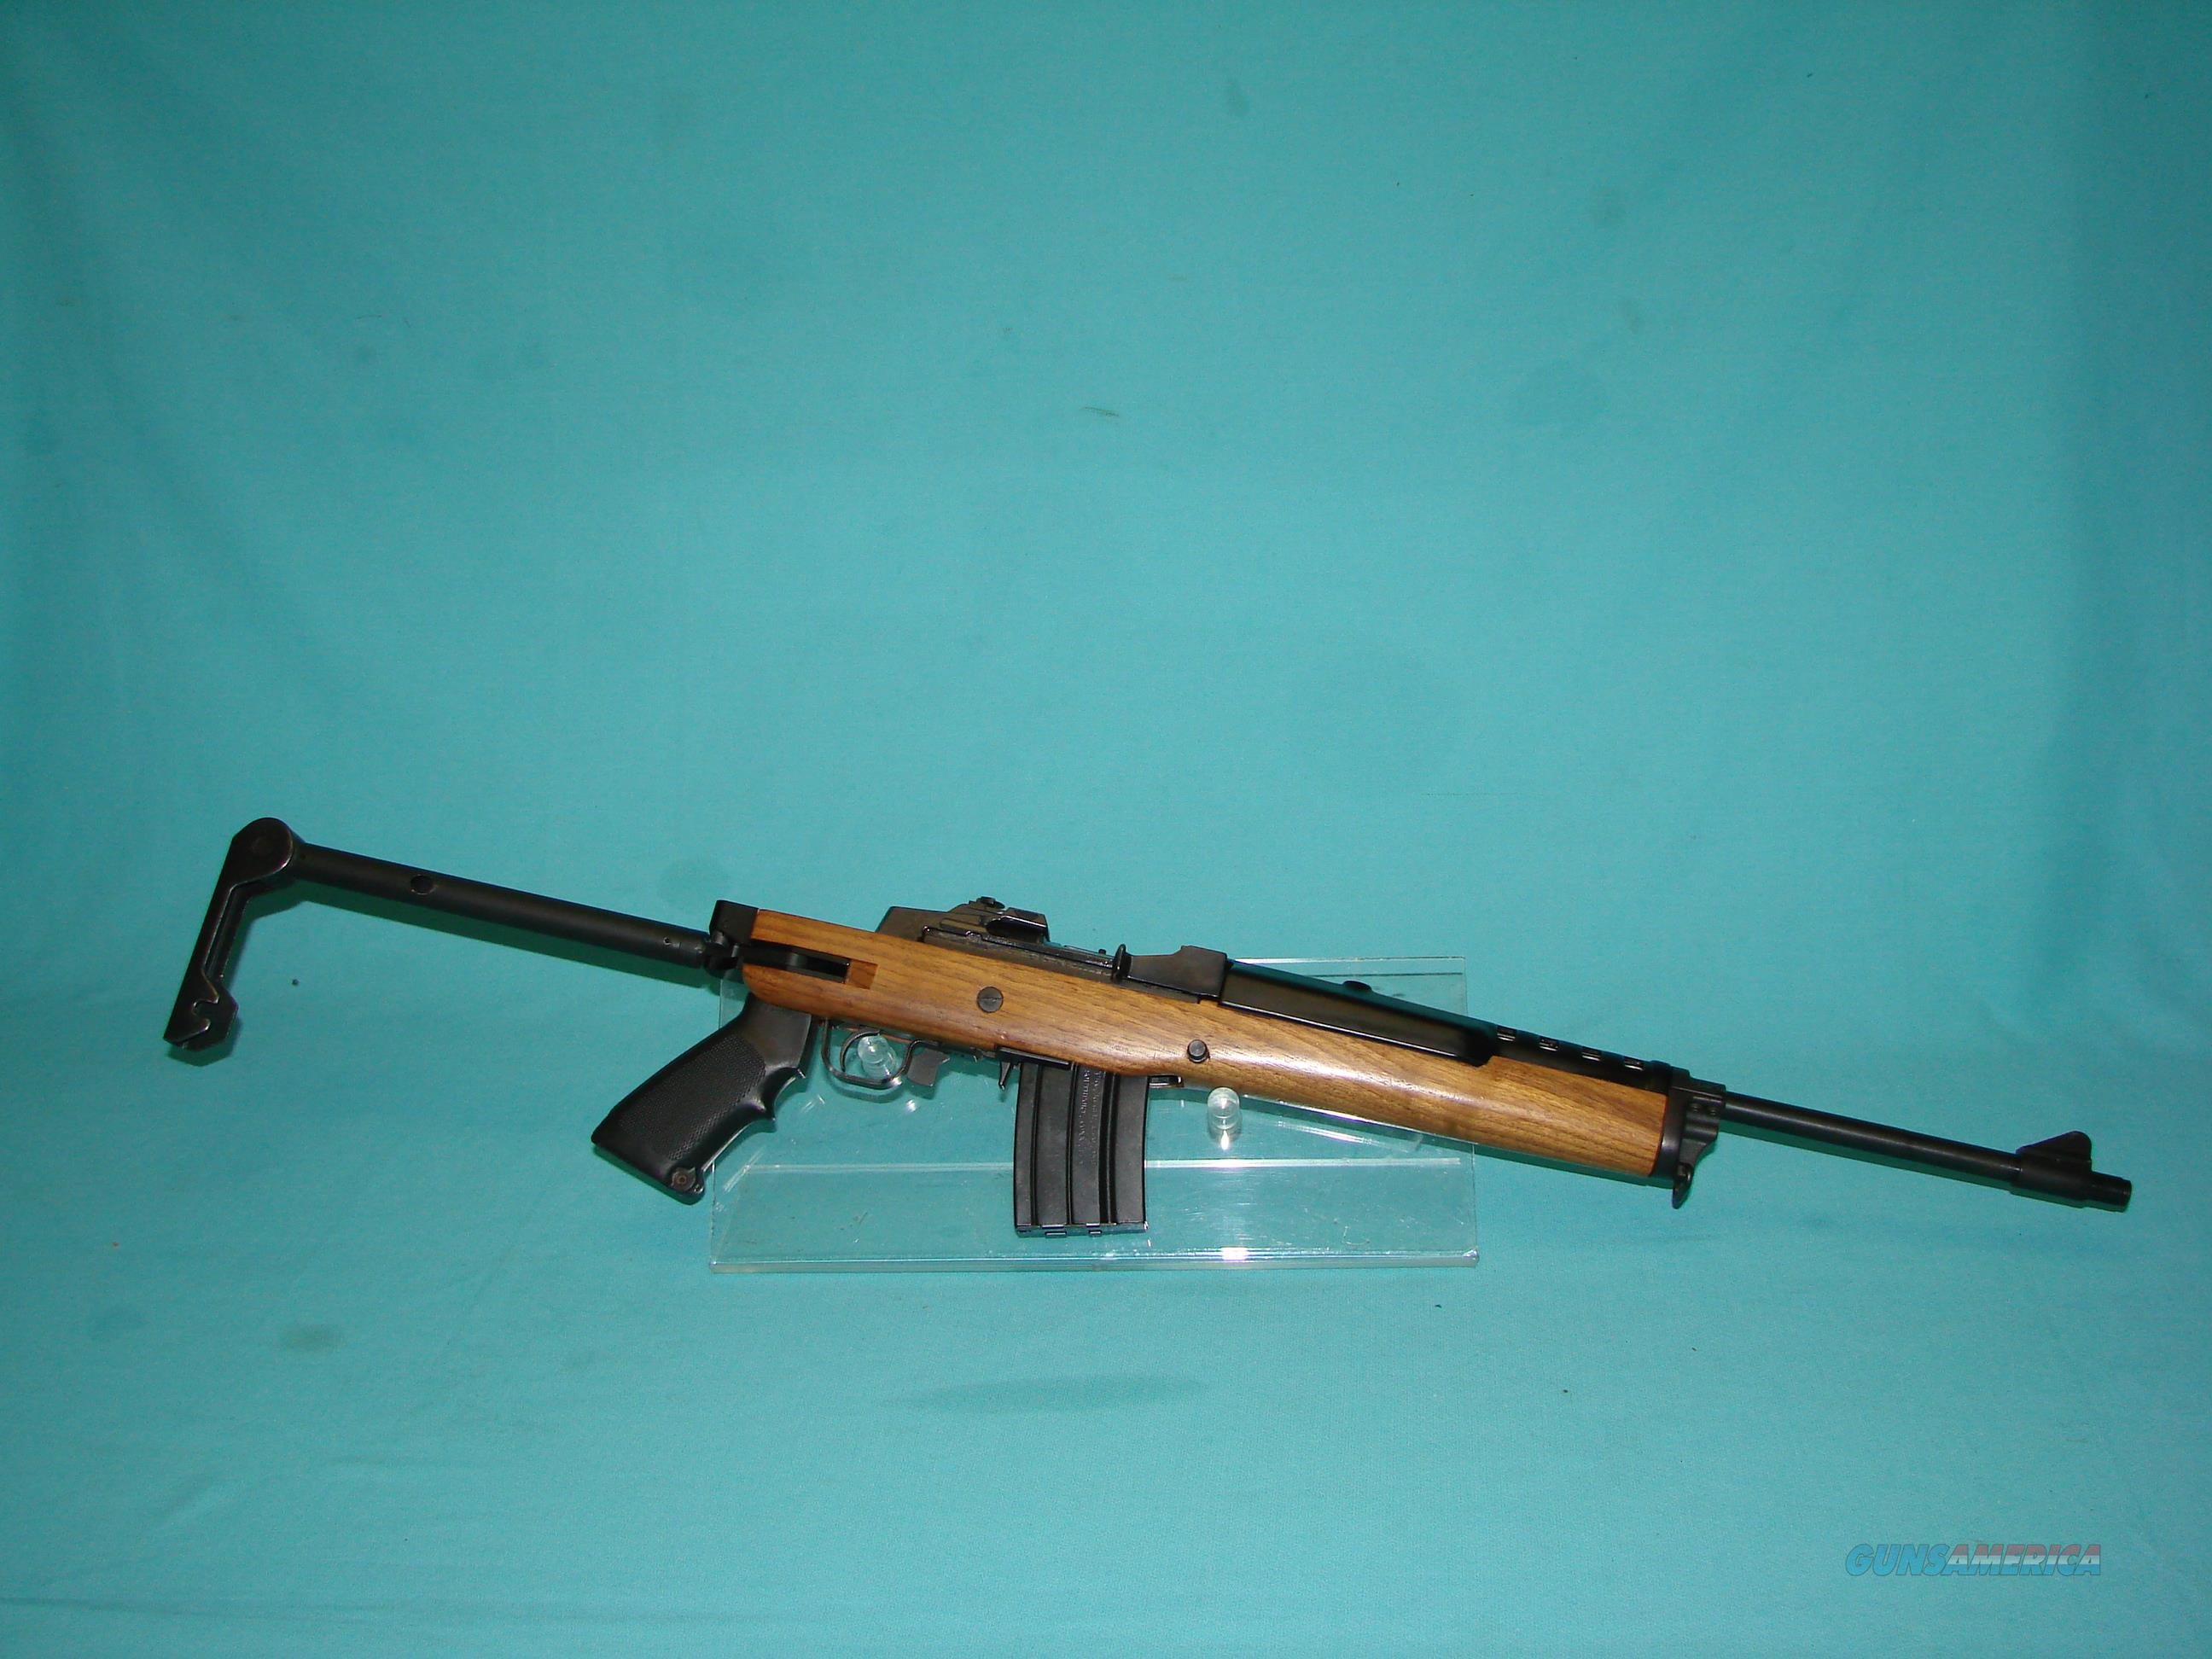 Ruger Mini 14 w/Factory Folding Stock  Guns > Rifles > Ruger Rifles > Mini-14 Type